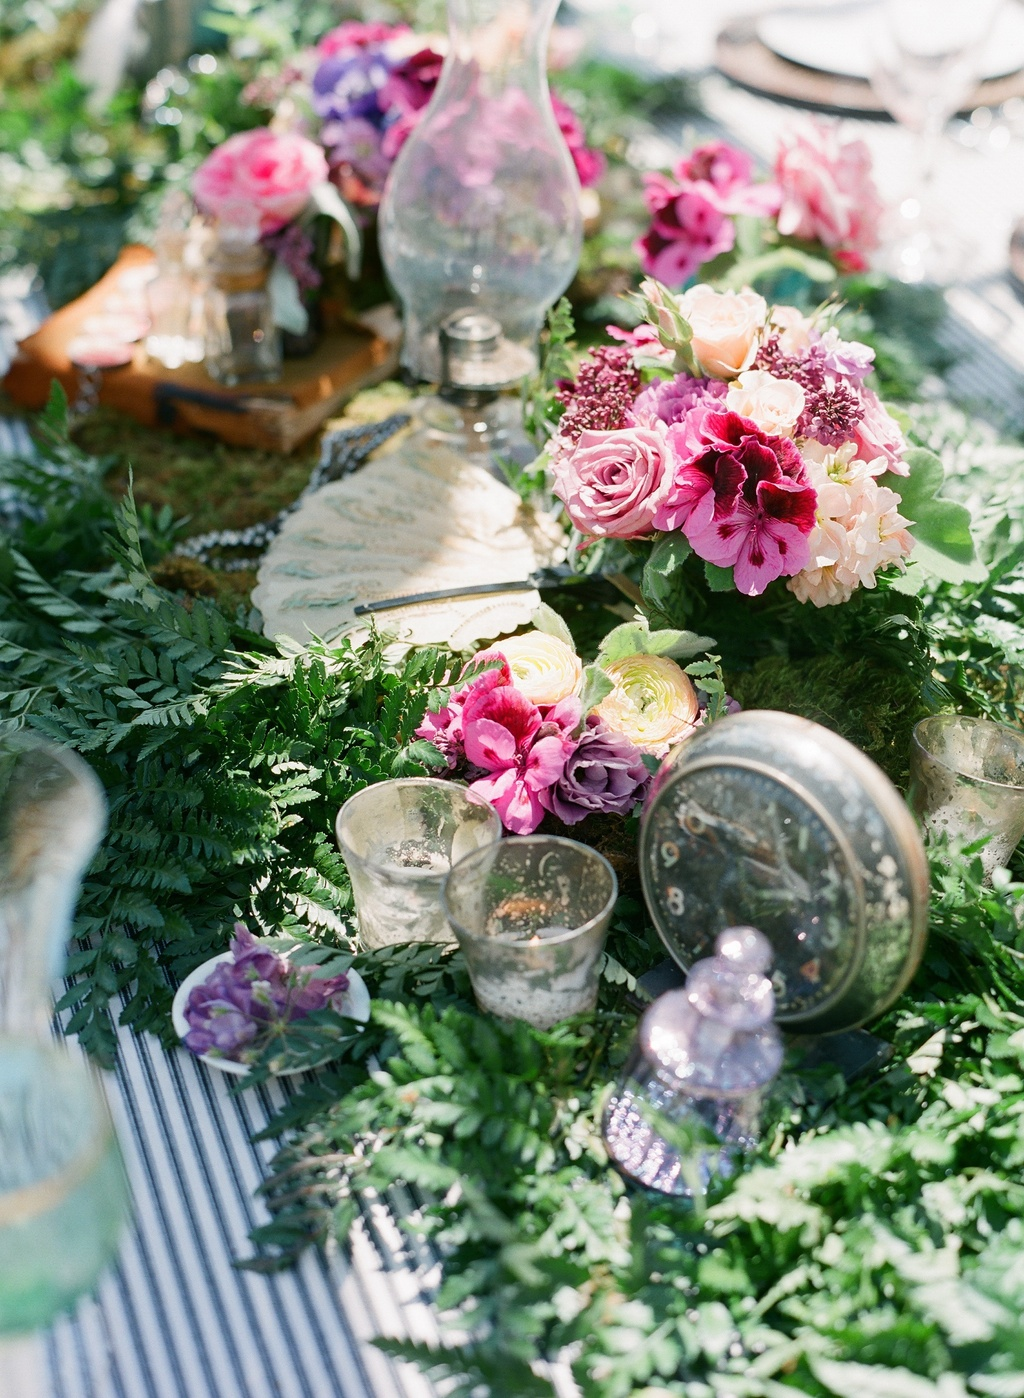 Styled-wedding-beaux-arts-tea-time-monique-lhuillier-santa-barbara-chic-flowers-pink-purple-moss-257.full